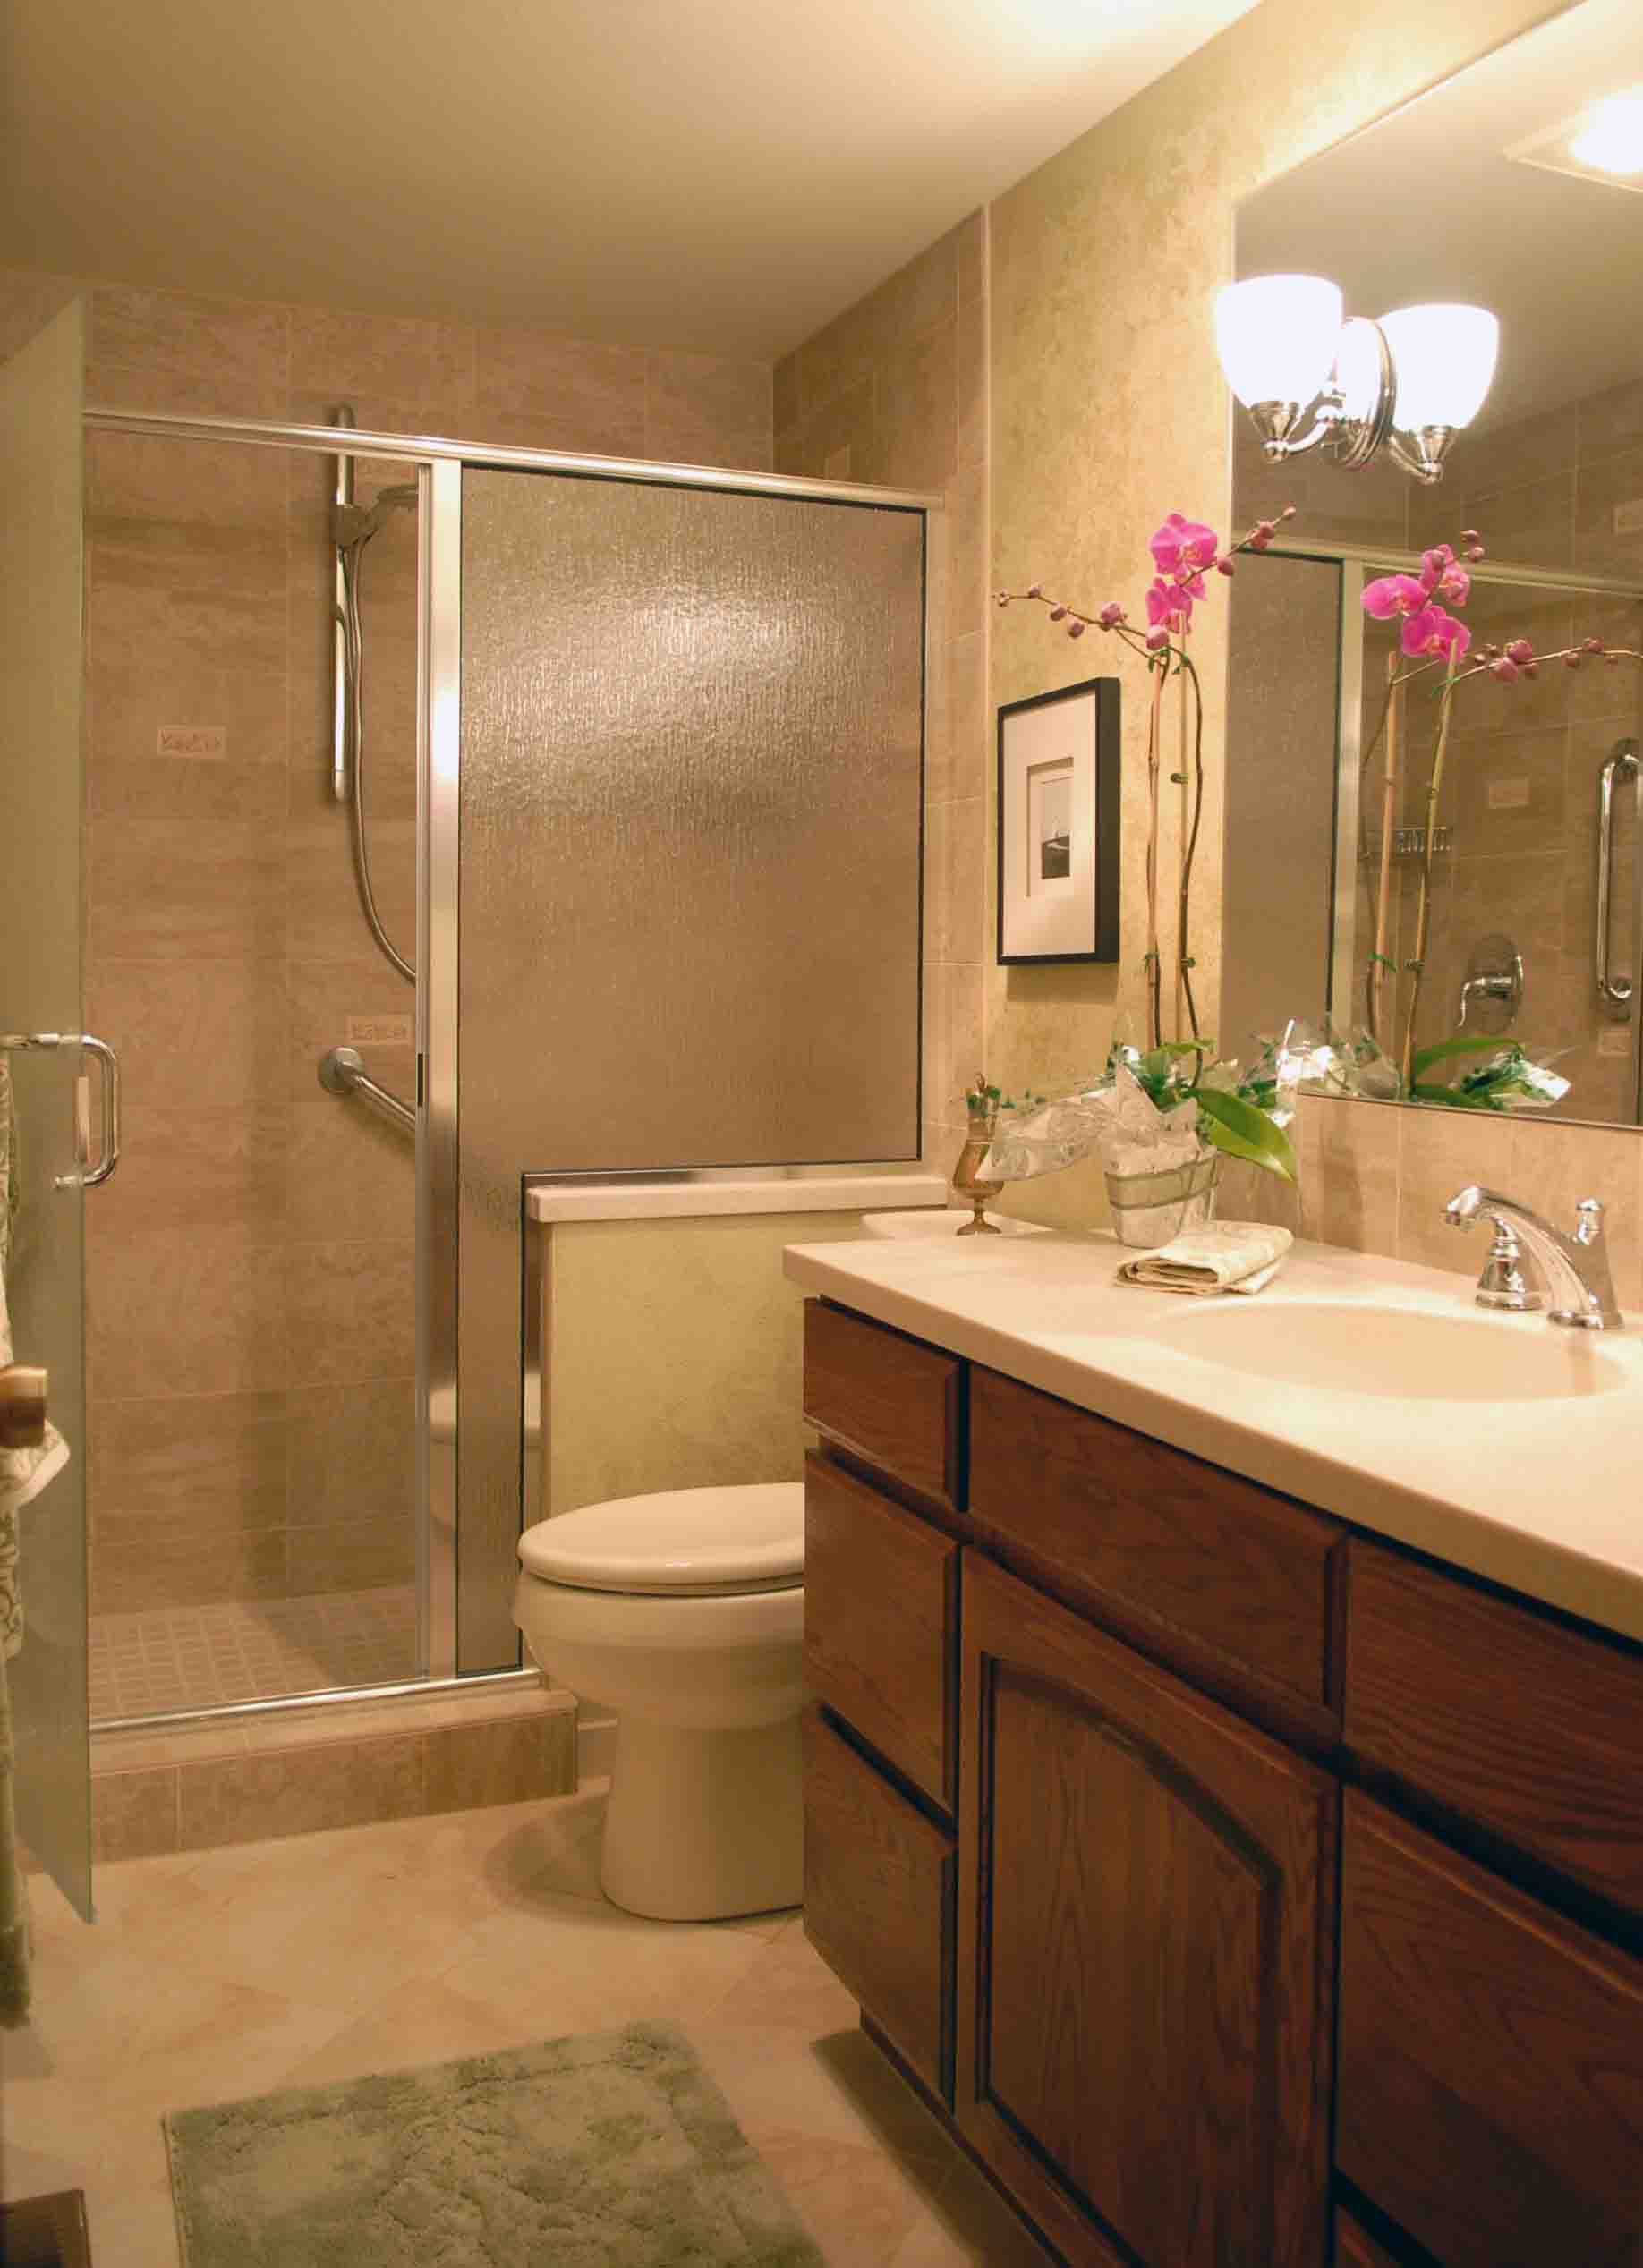 Small space bathroom ideas - Intresting Bathroom Ideas For Small Spaces Design Ideas Image 5 Of 10